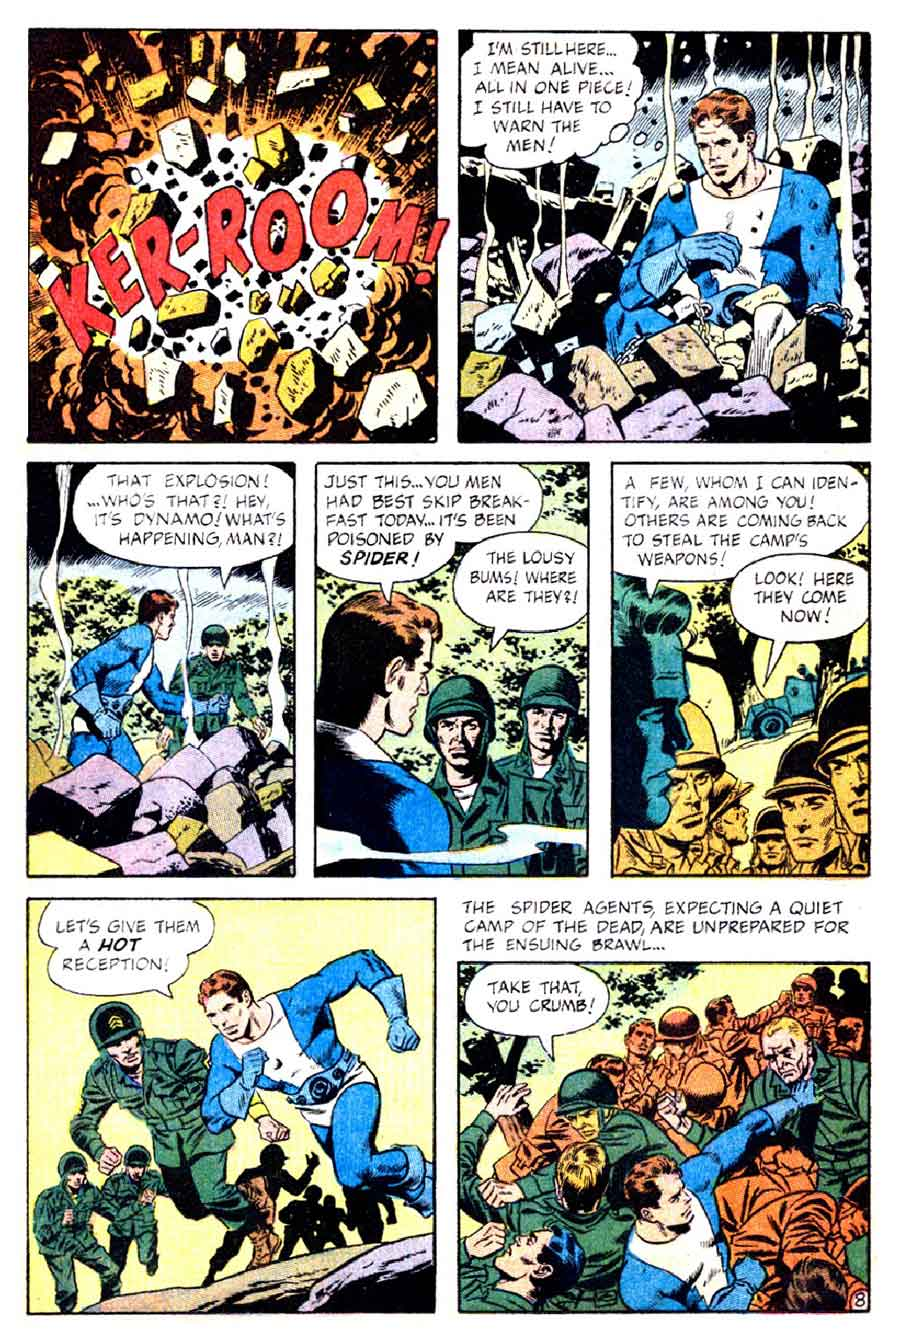 Thunder Agents v1 #9 tower silver age 1960s comic book page art by Wally Wood